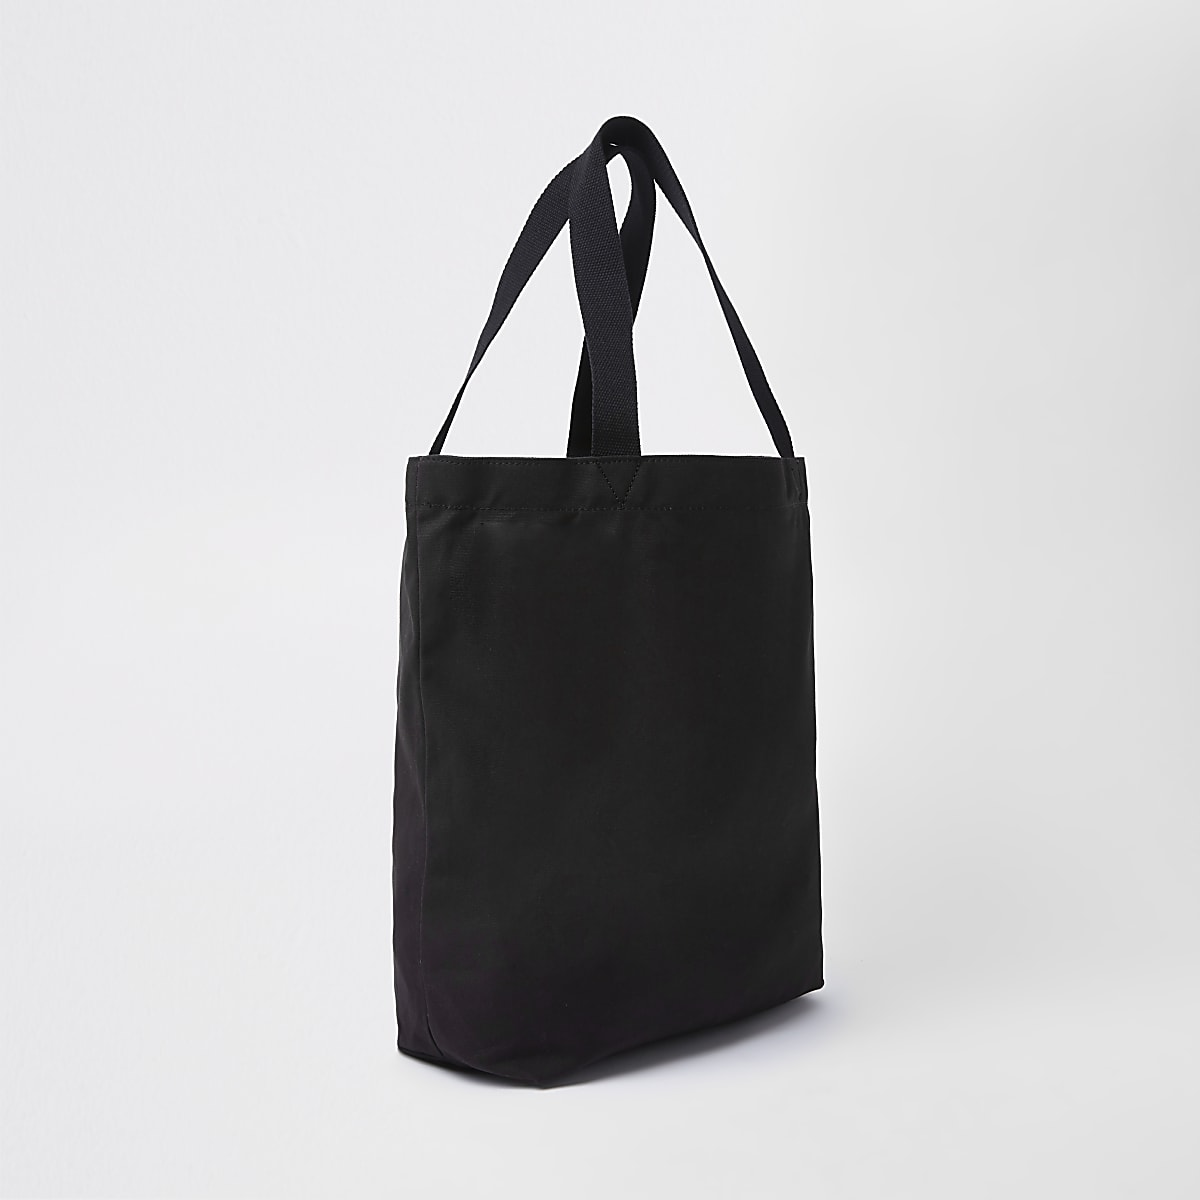 94f92501499 Home · Men · Bags  Levi s black tote bag. Levi s black tote bag Levi s  black tote bag Levi s black tote ...